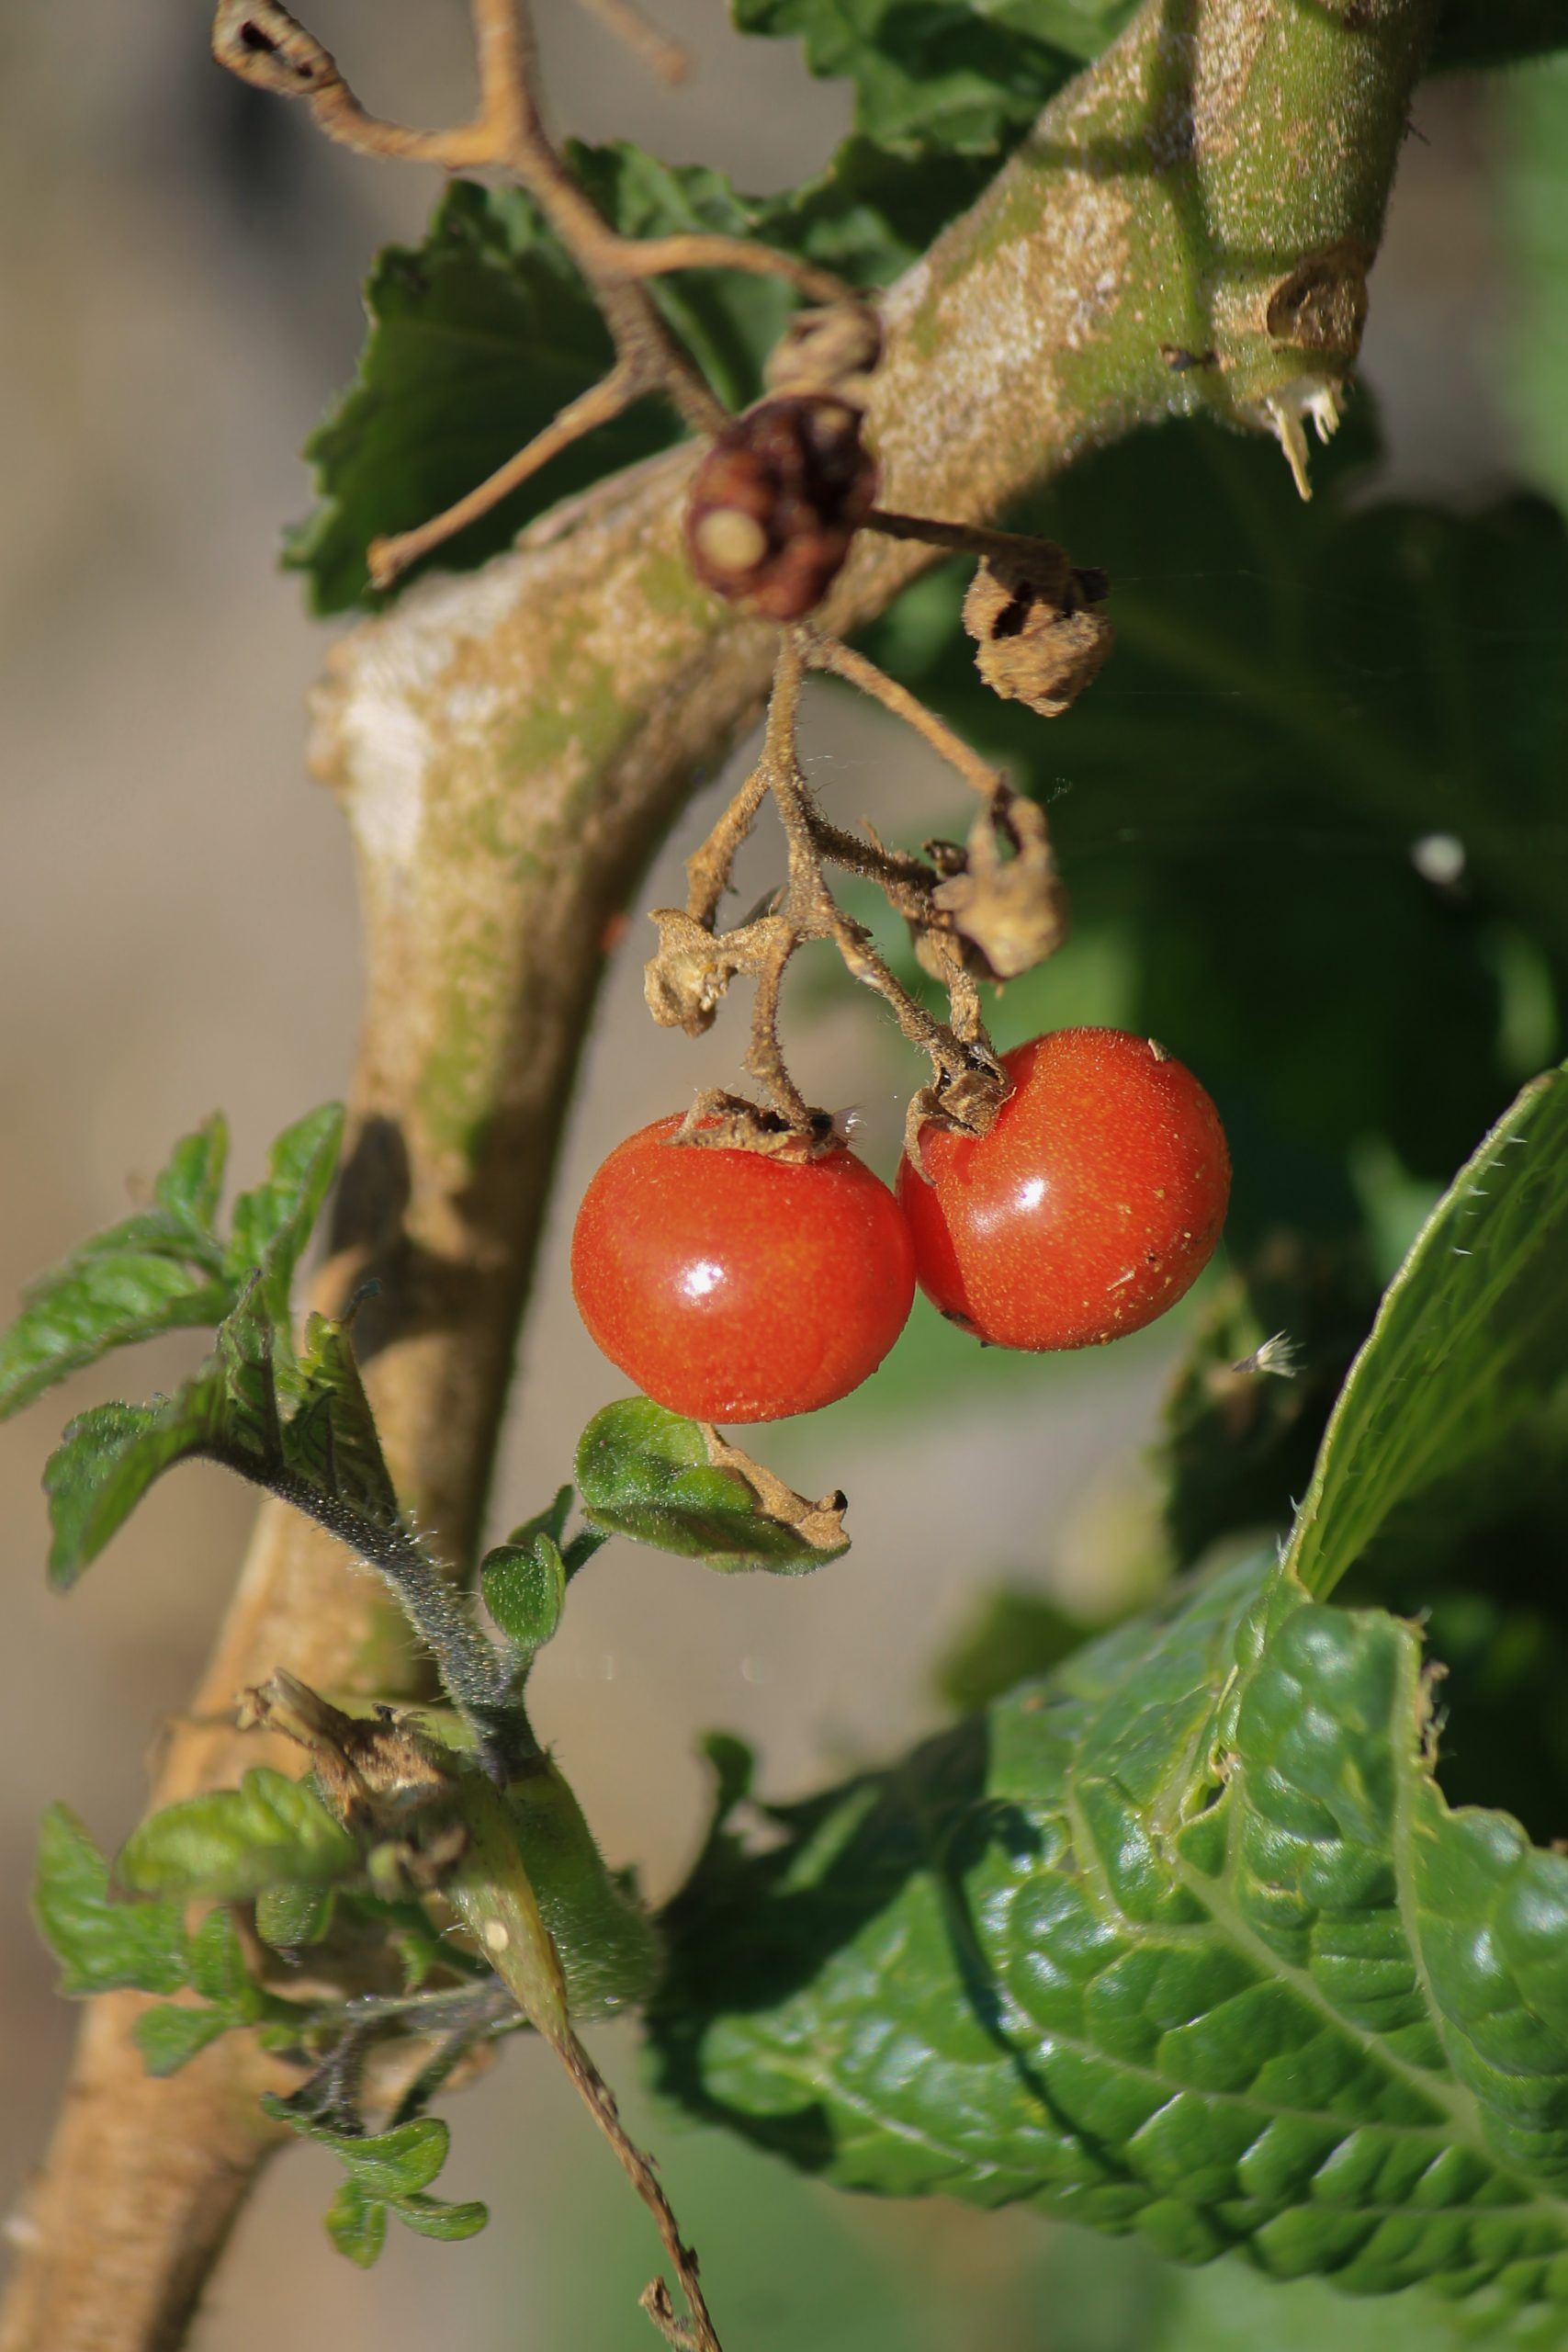 tomatoes on a plant